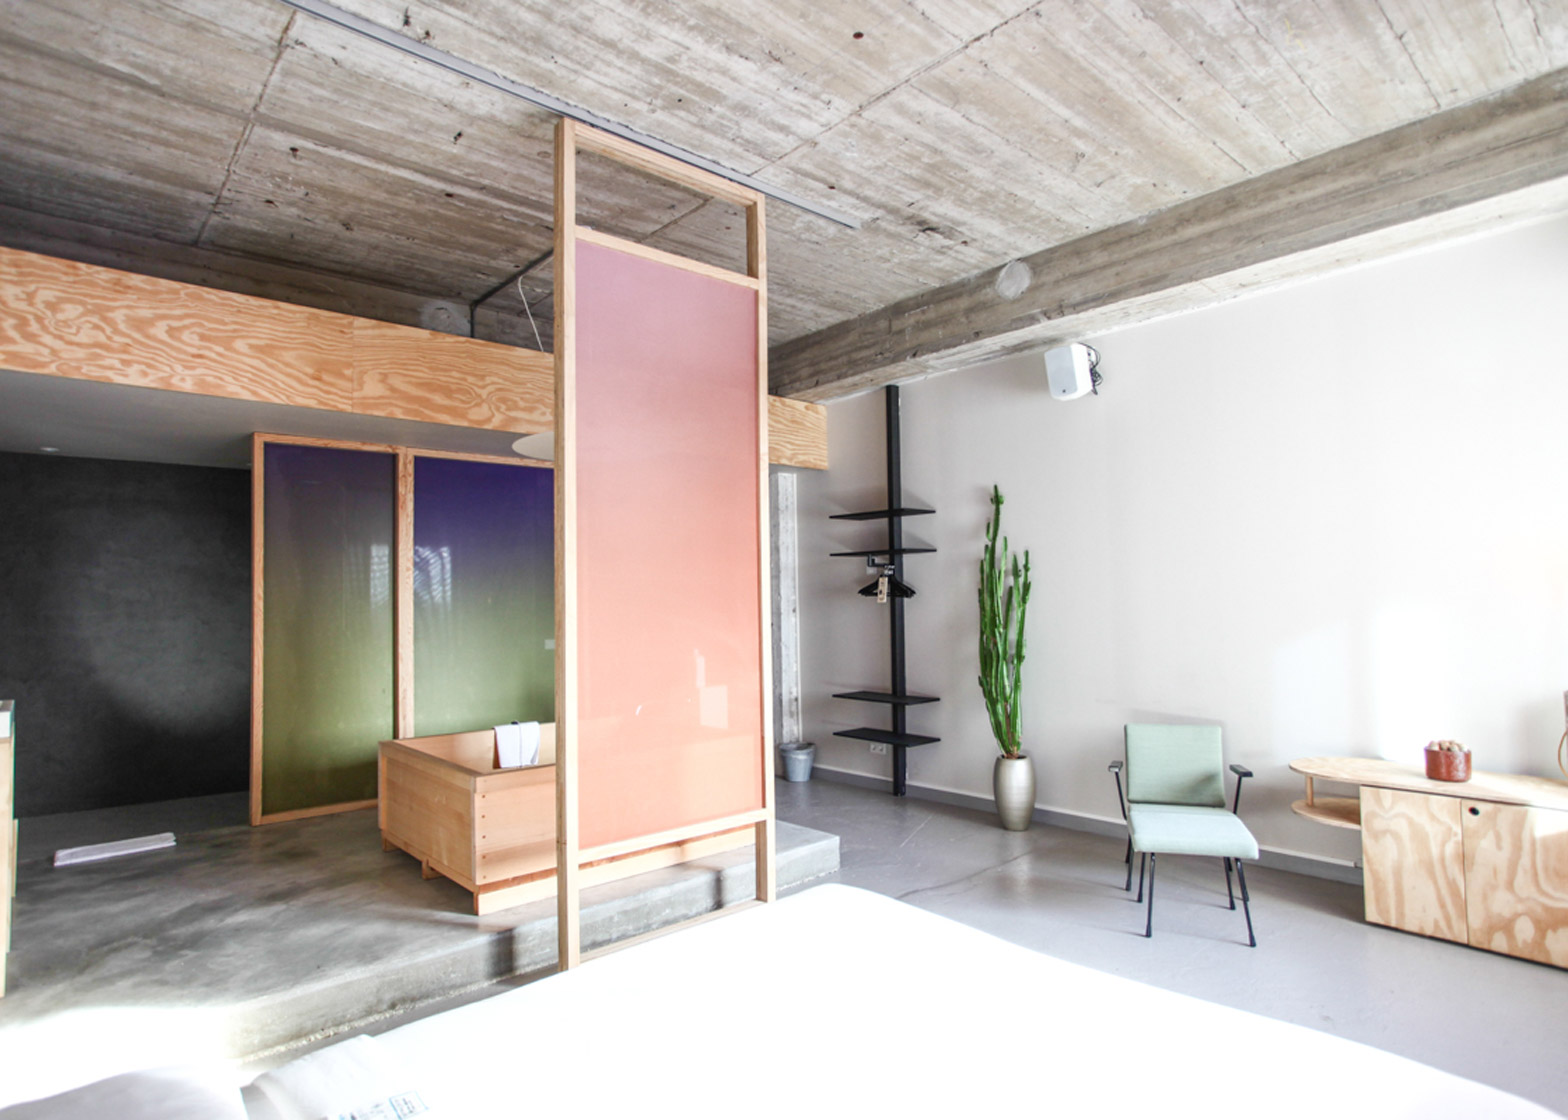 Hanna Marings Volkshotel Suite Has A Wooden Bathtub And Colourful Screens